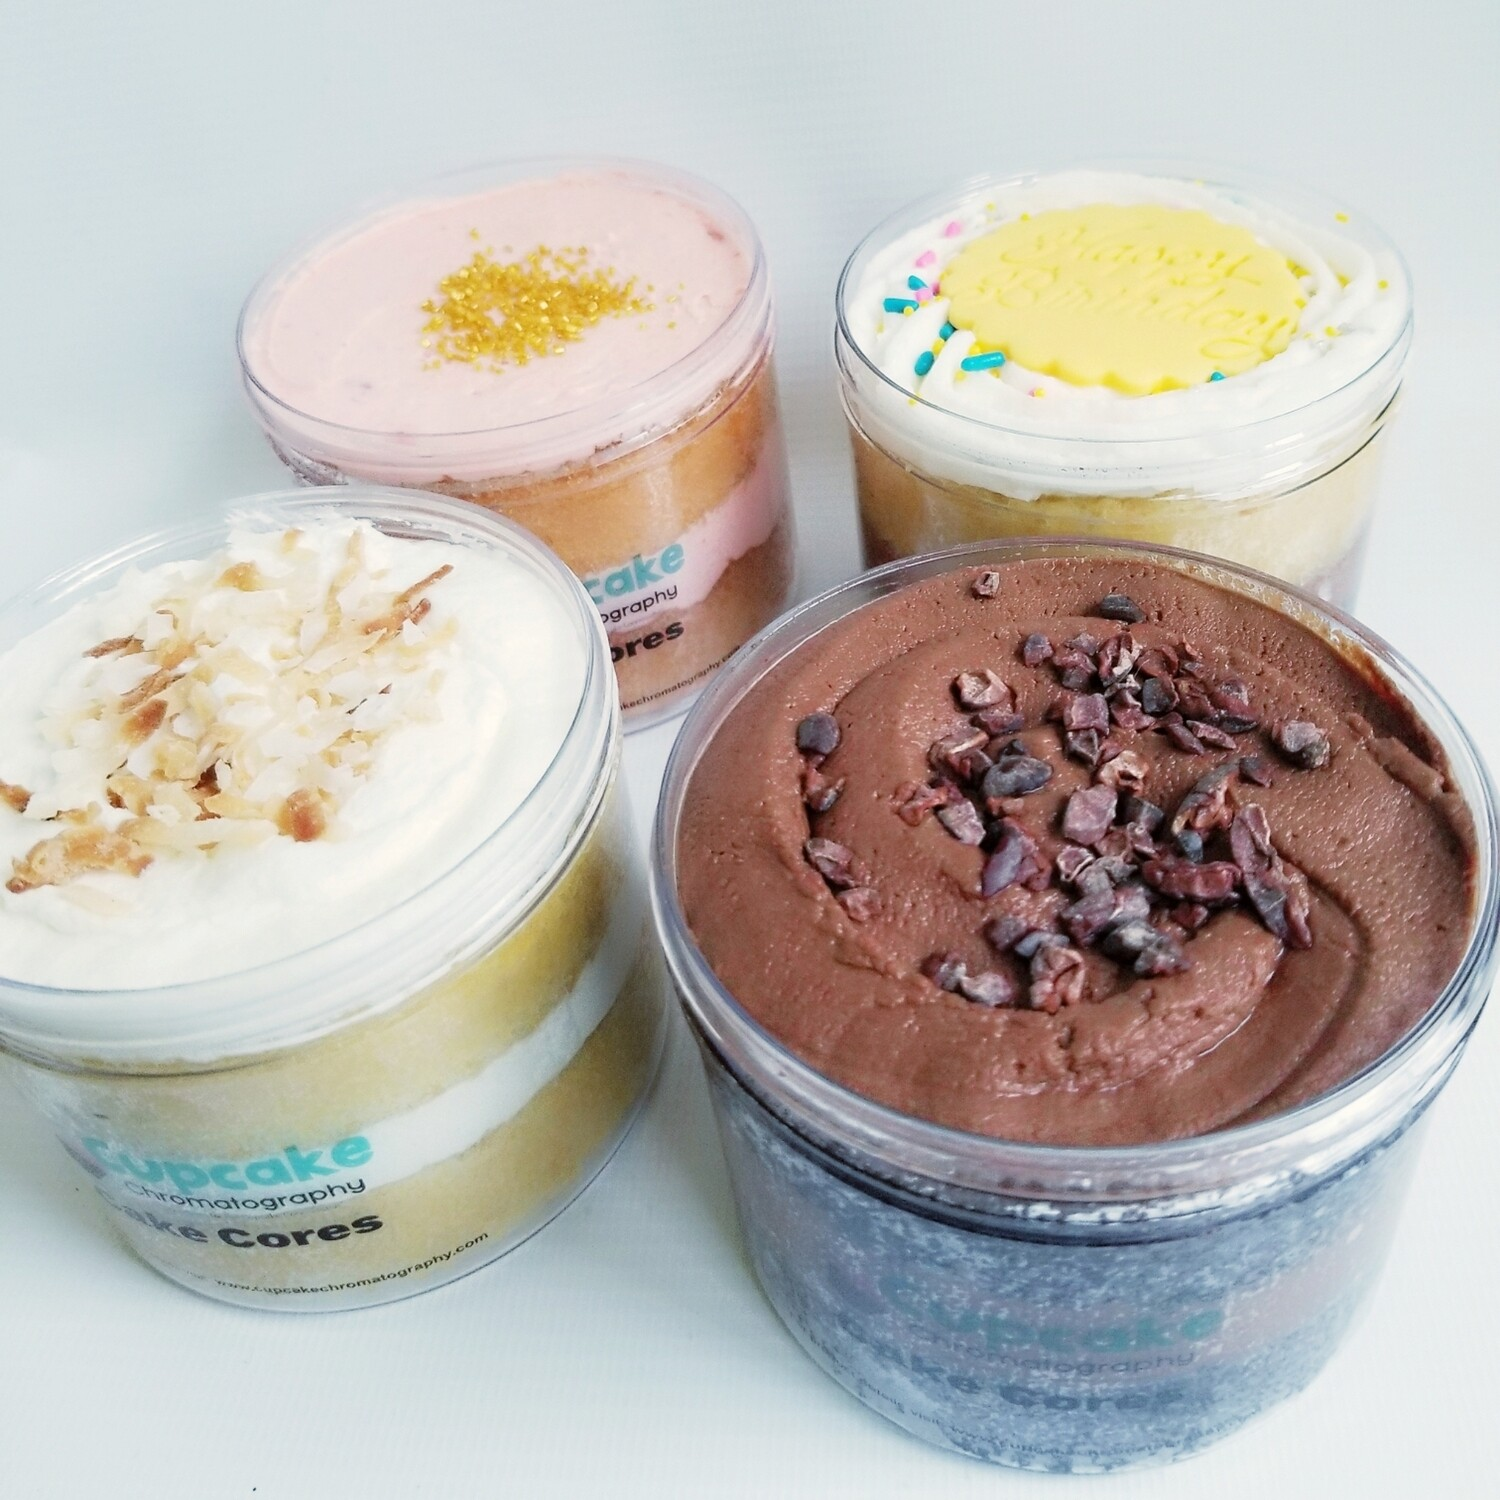 Cake Cores (4 pack)